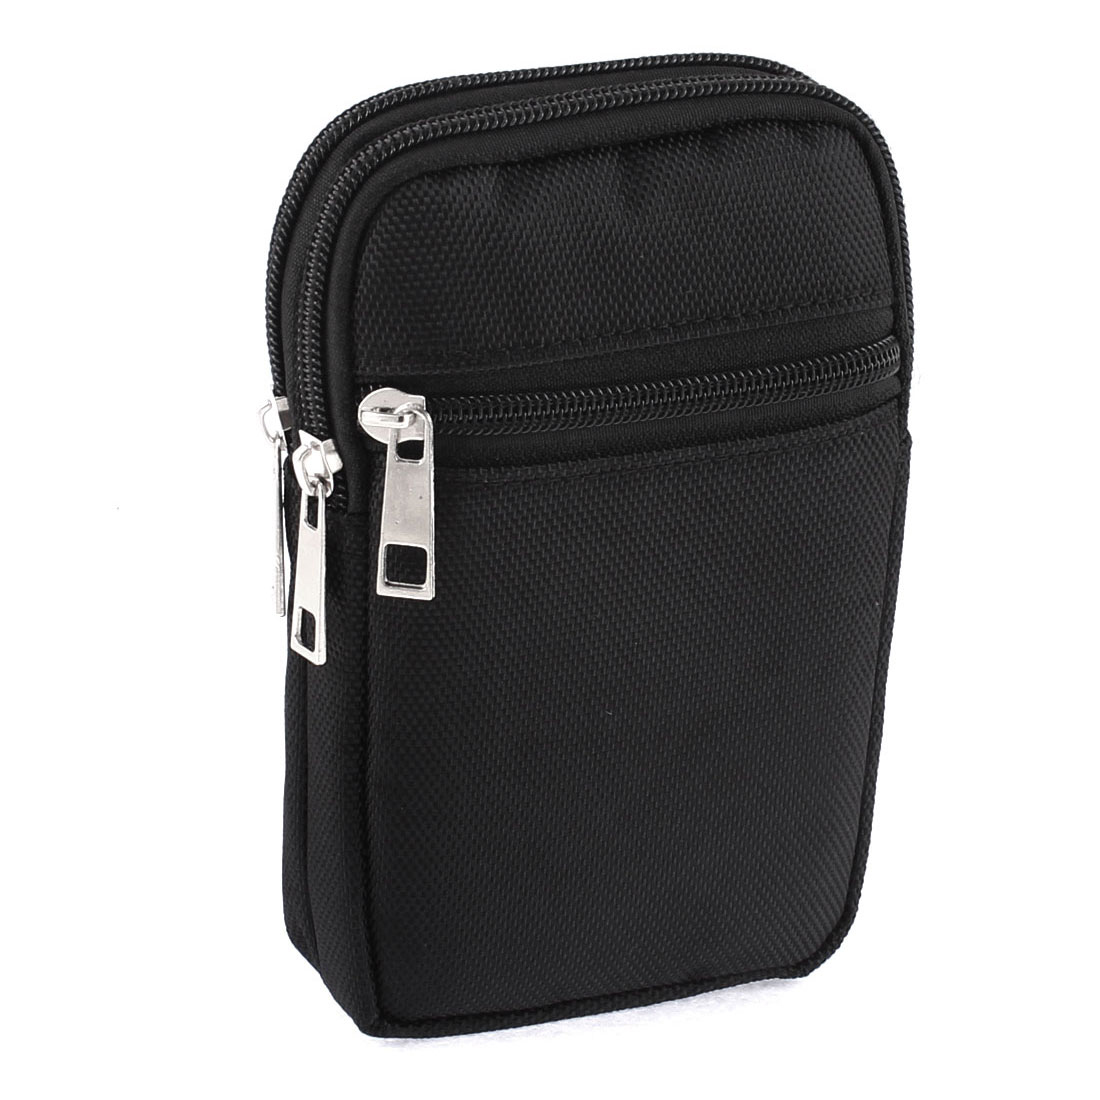 Man Zippered Coin Phone Cards Holder Waist Belt Pack Bag Wallet Black